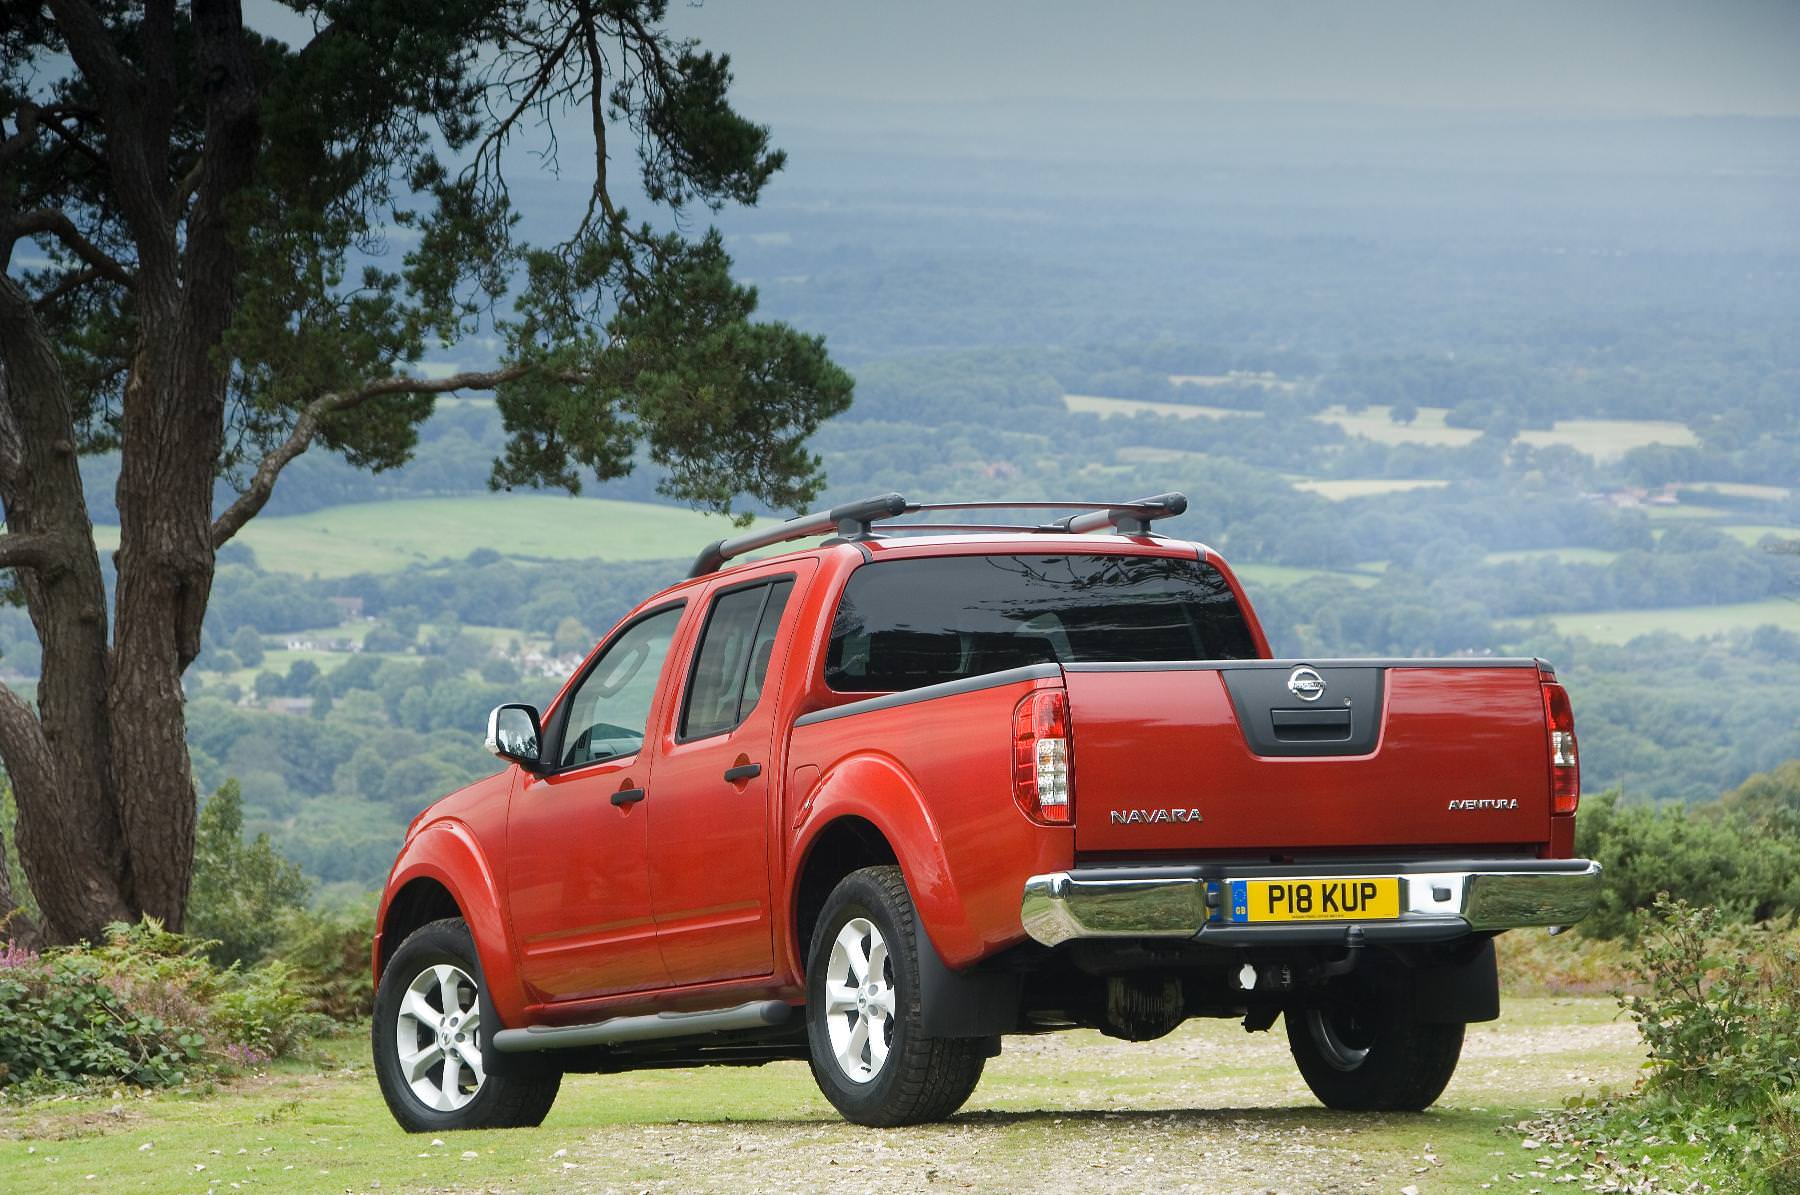 Used Car Buying Guide: the best pickup trucks for £6000